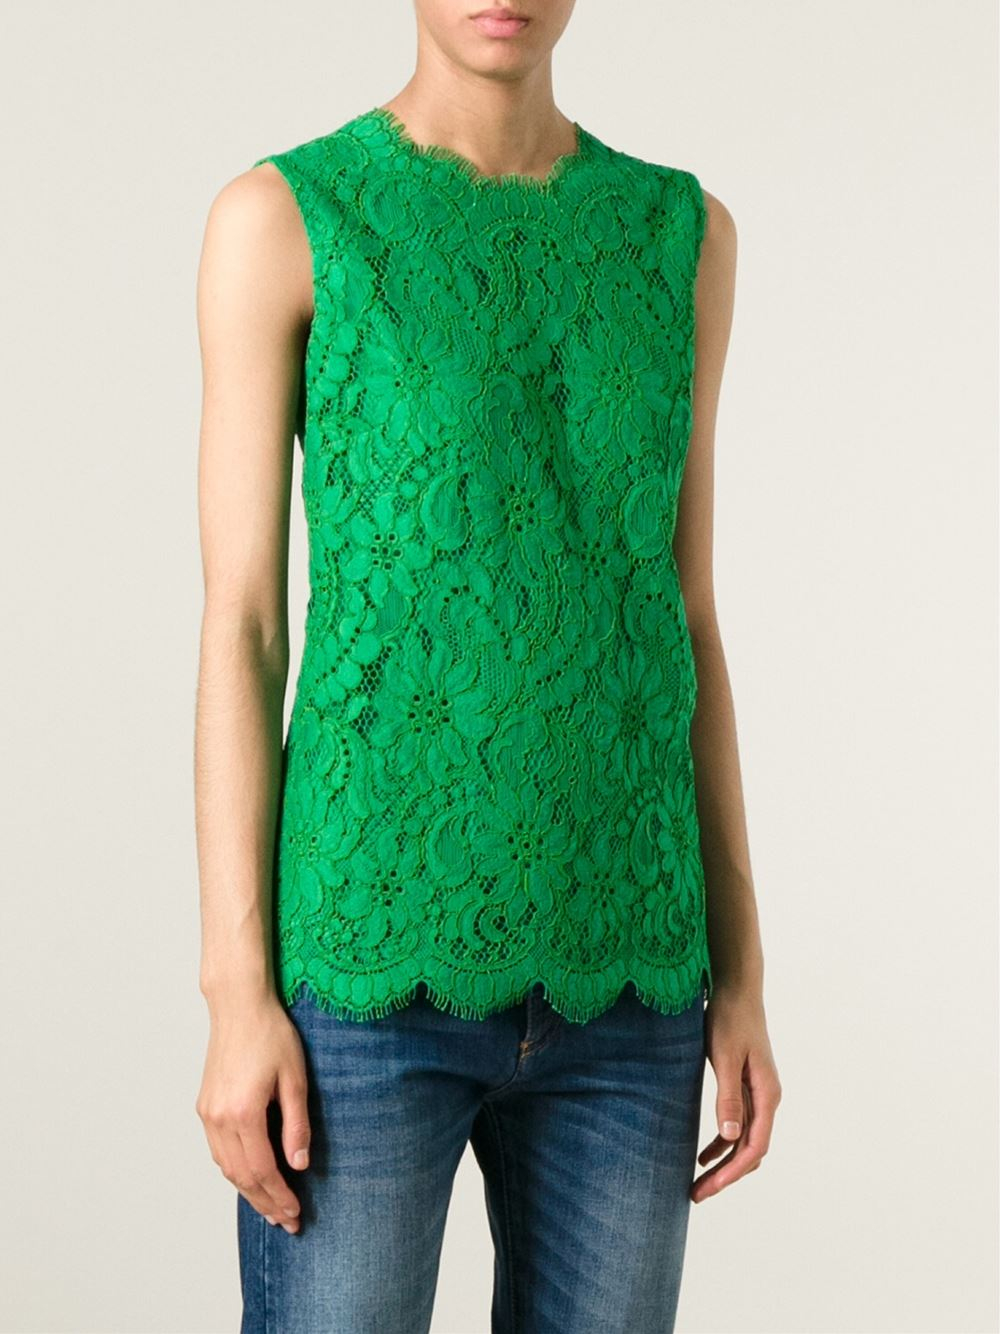 Dolce & Gabbana Floral Lace Sleeveless Blouse in Green - Lyst